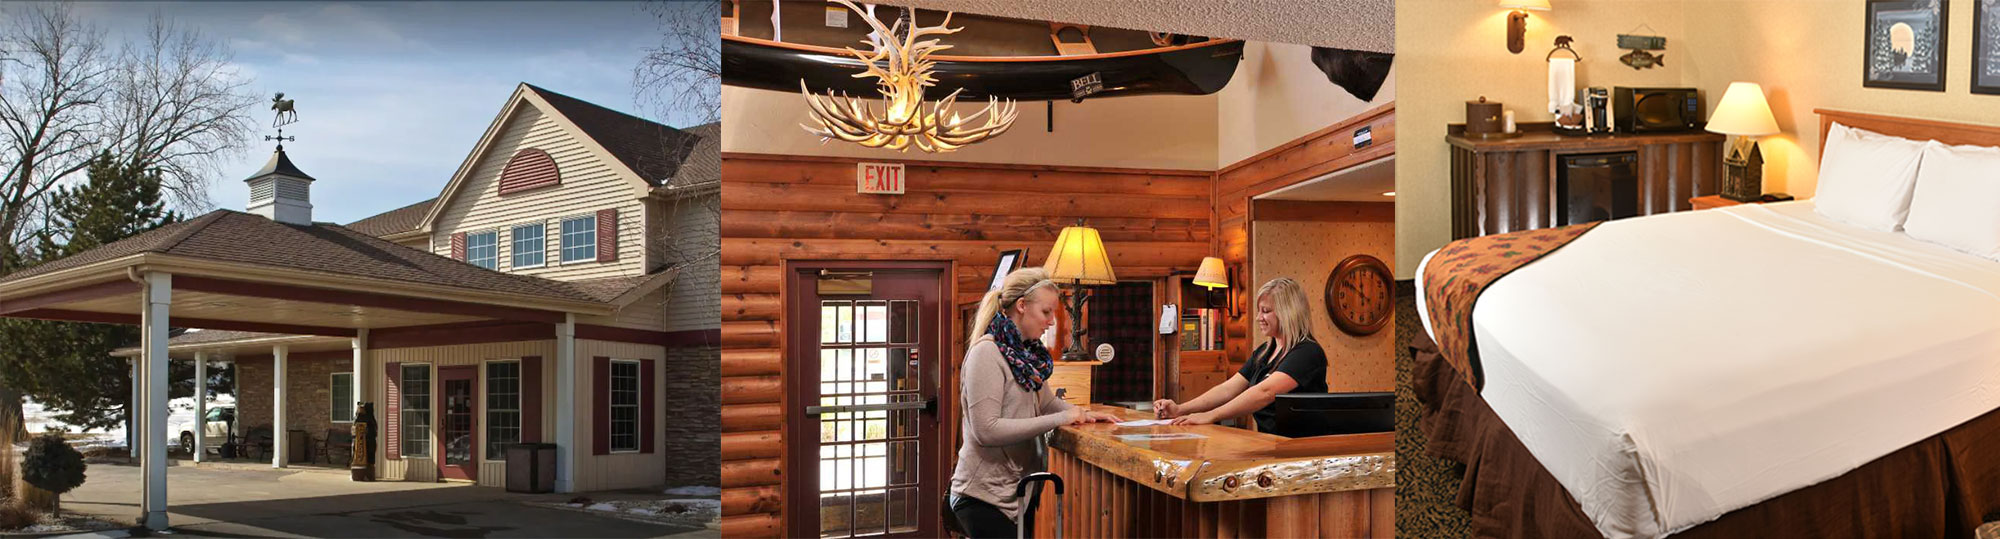 Boarders Inn and Suites Waukon